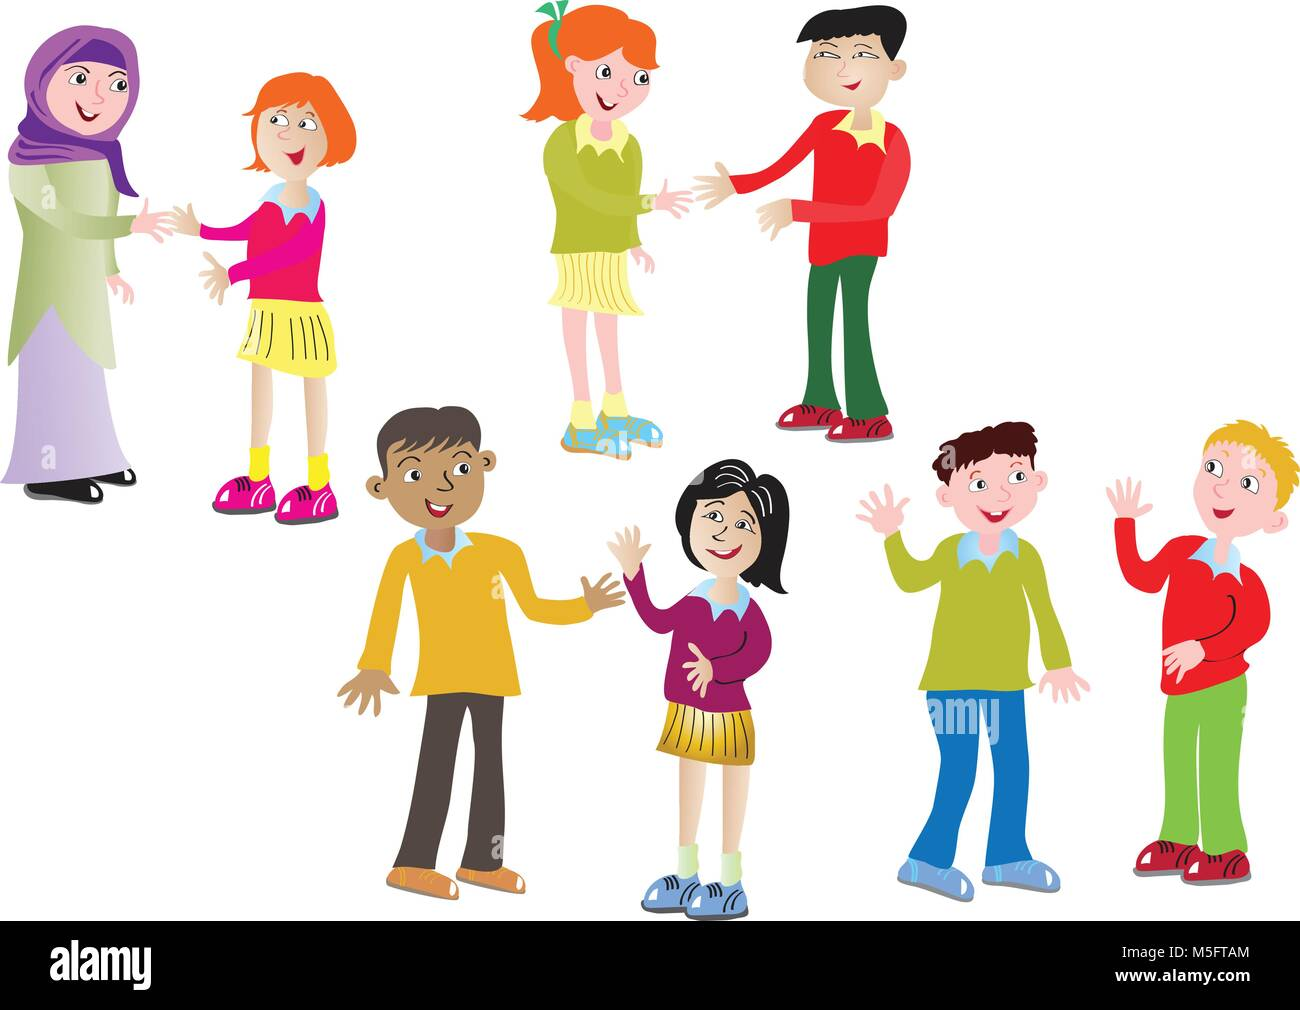 Boy And Girl Greeting Each Other Stock Photos & Boy And